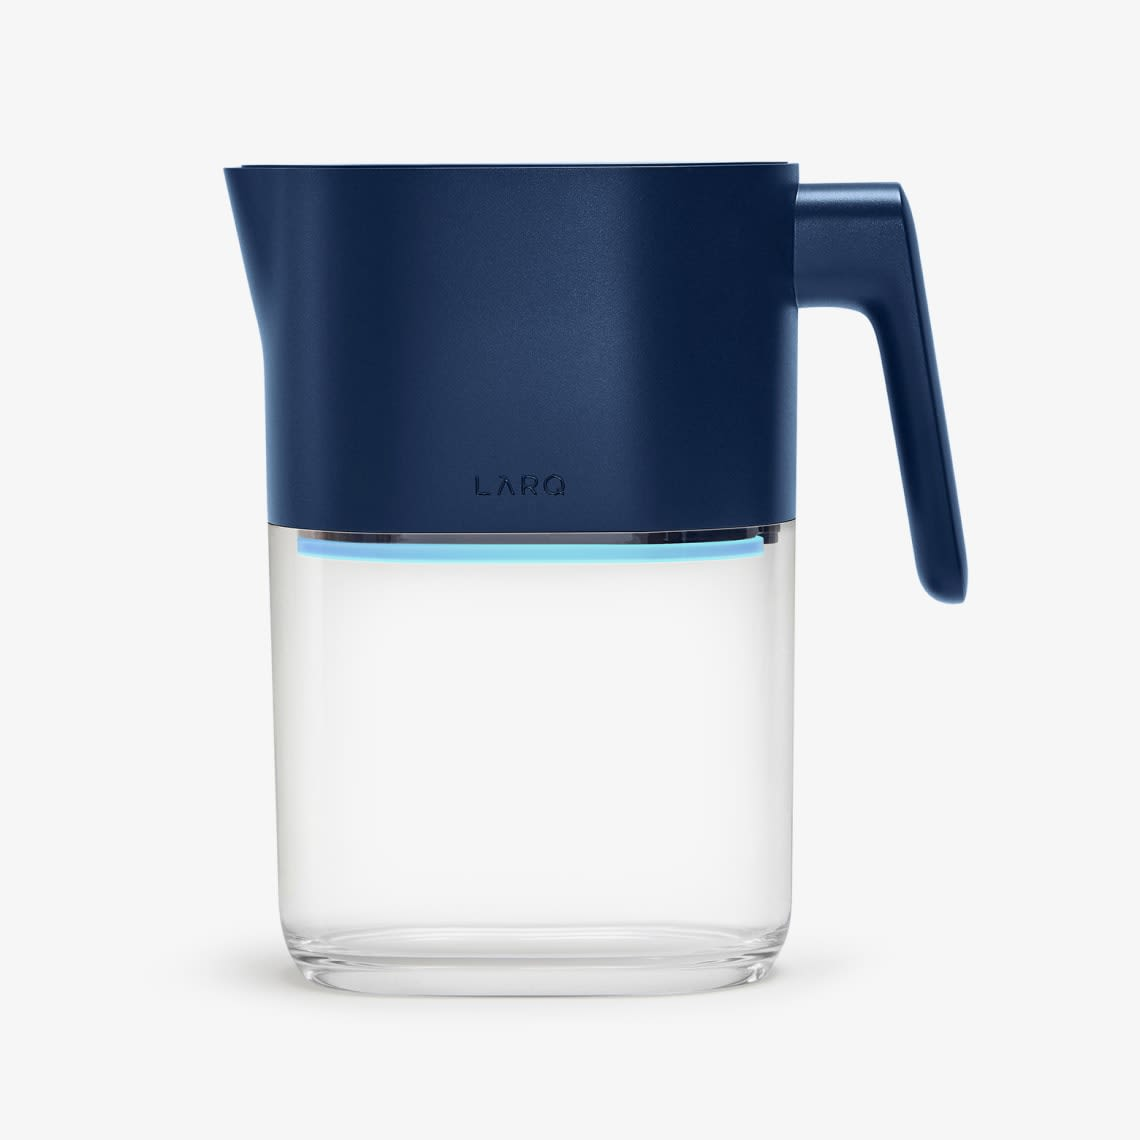 LARQ Pitcher PureVis - Monaco Blue